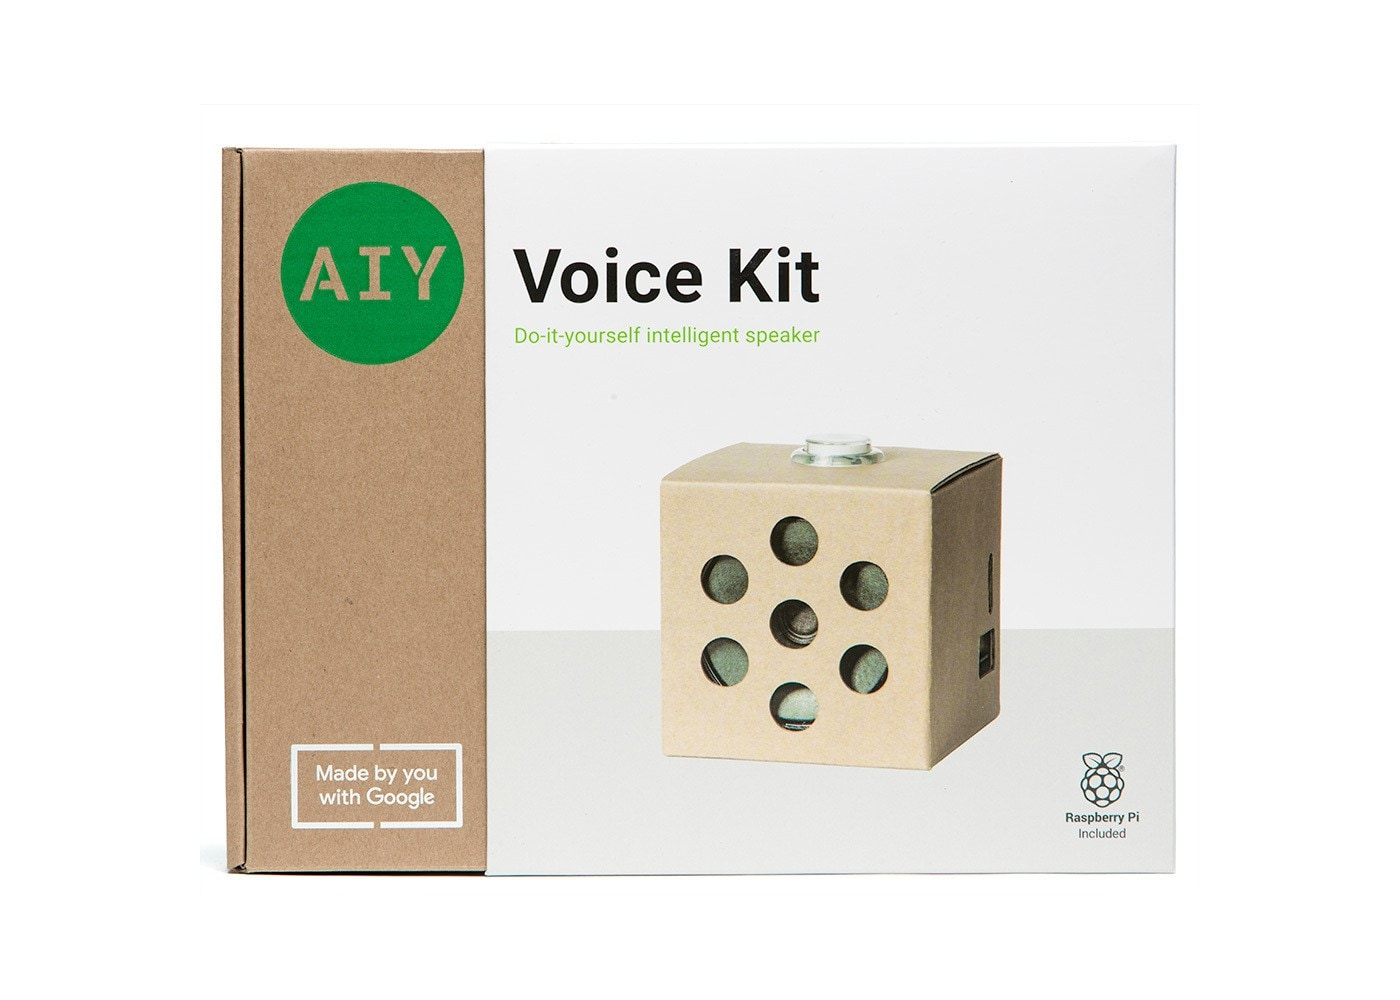 AIY-Voice-Kit-Google1